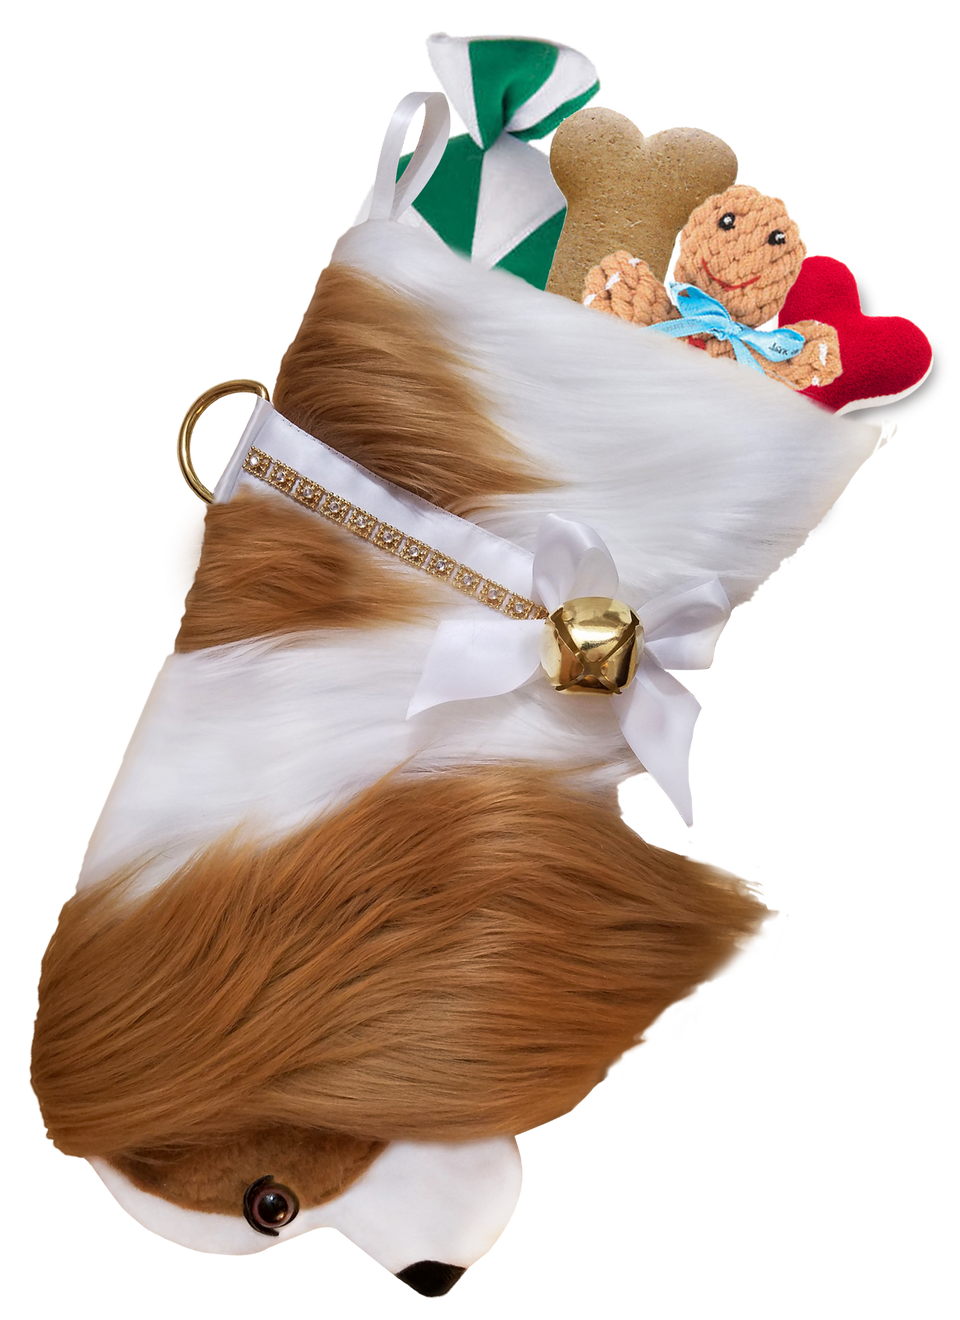 This Cavalier King Charles Spaniel dog Christmas stocking is the perfect gift for stuffing toys and treats into to spoil your fur baby for Christmas, or whatever holiday you celebrate!